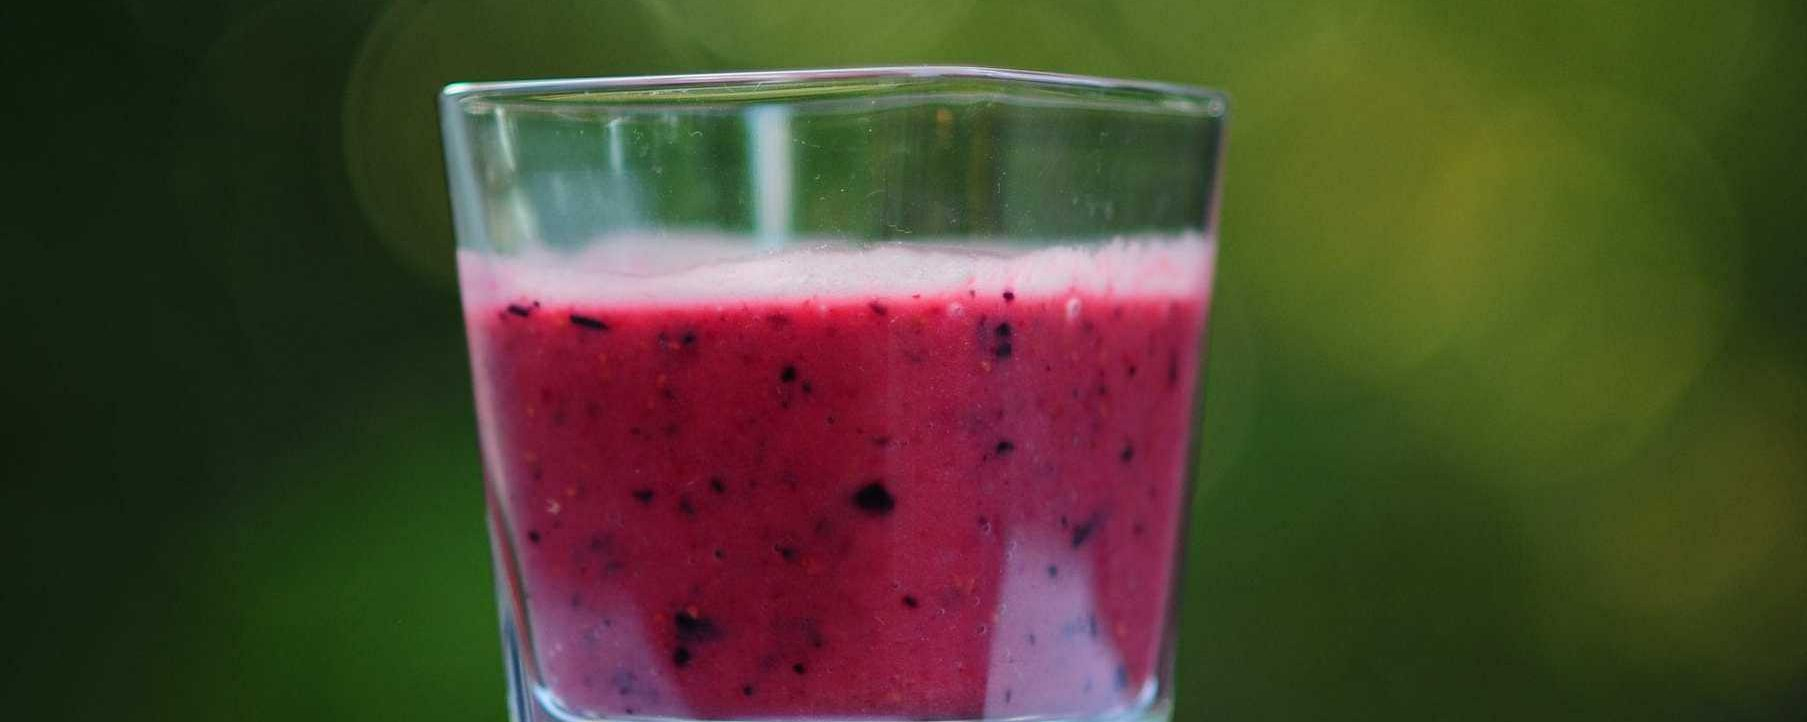 Food as Medicine: Coconut Berry Puree Recipe